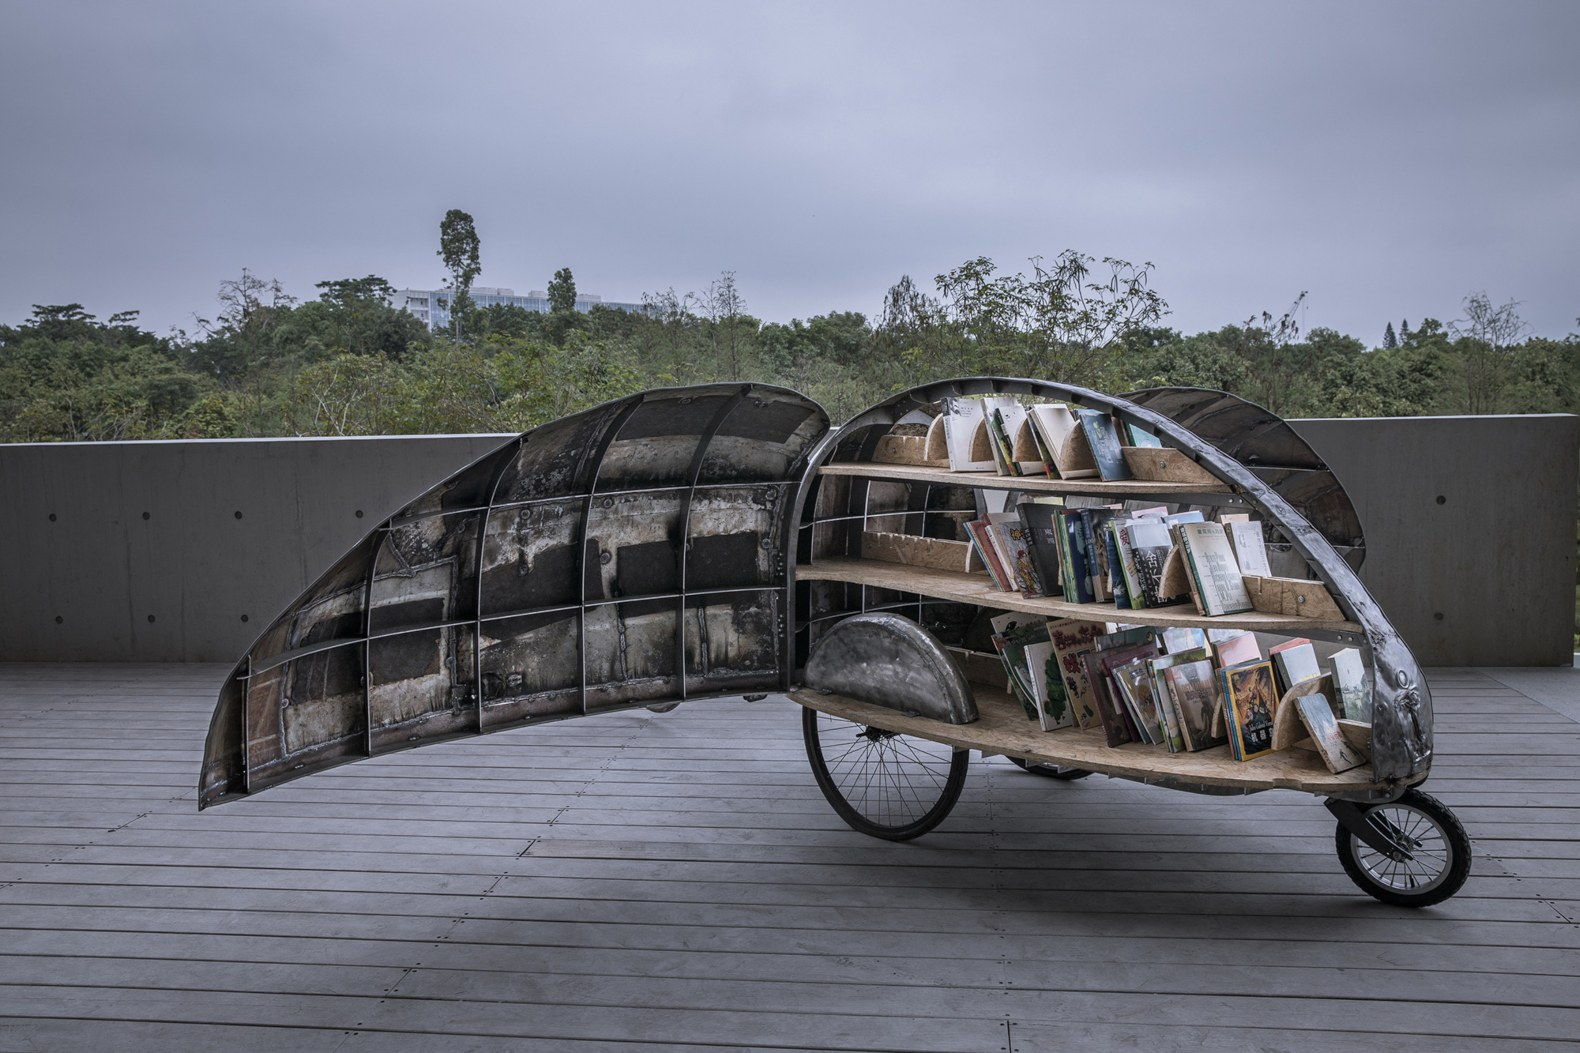 Urban waste is upcycled into an adorable, beetle-shaped micro library on wheels